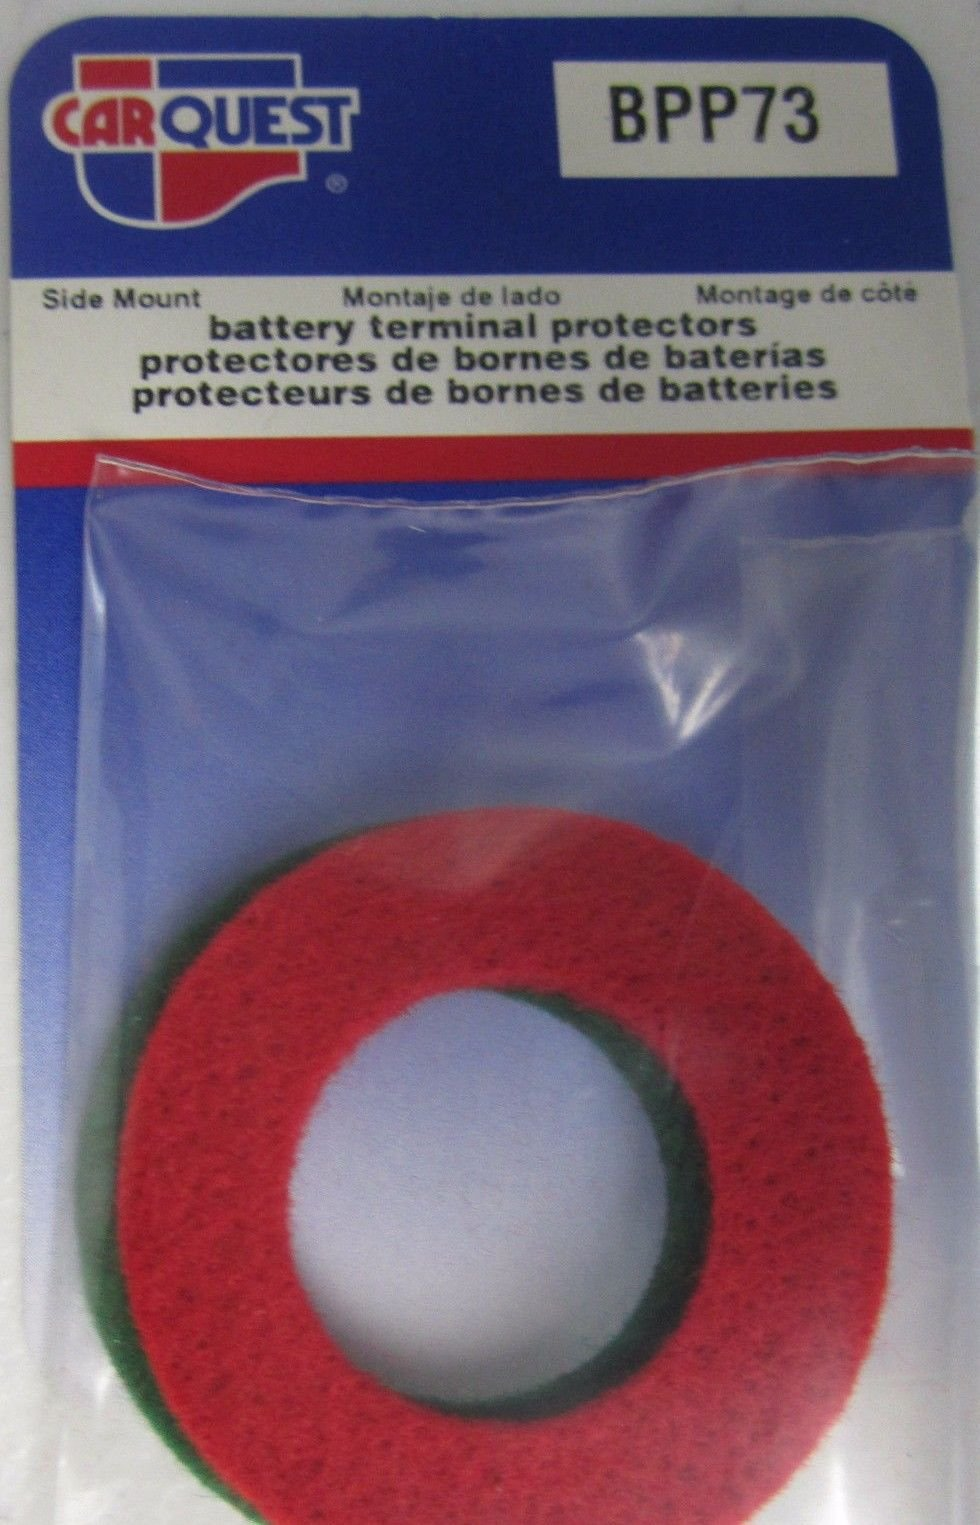 Carquest Brand BPP73 BPP 73 Side Mount Battery Terminal Protectors